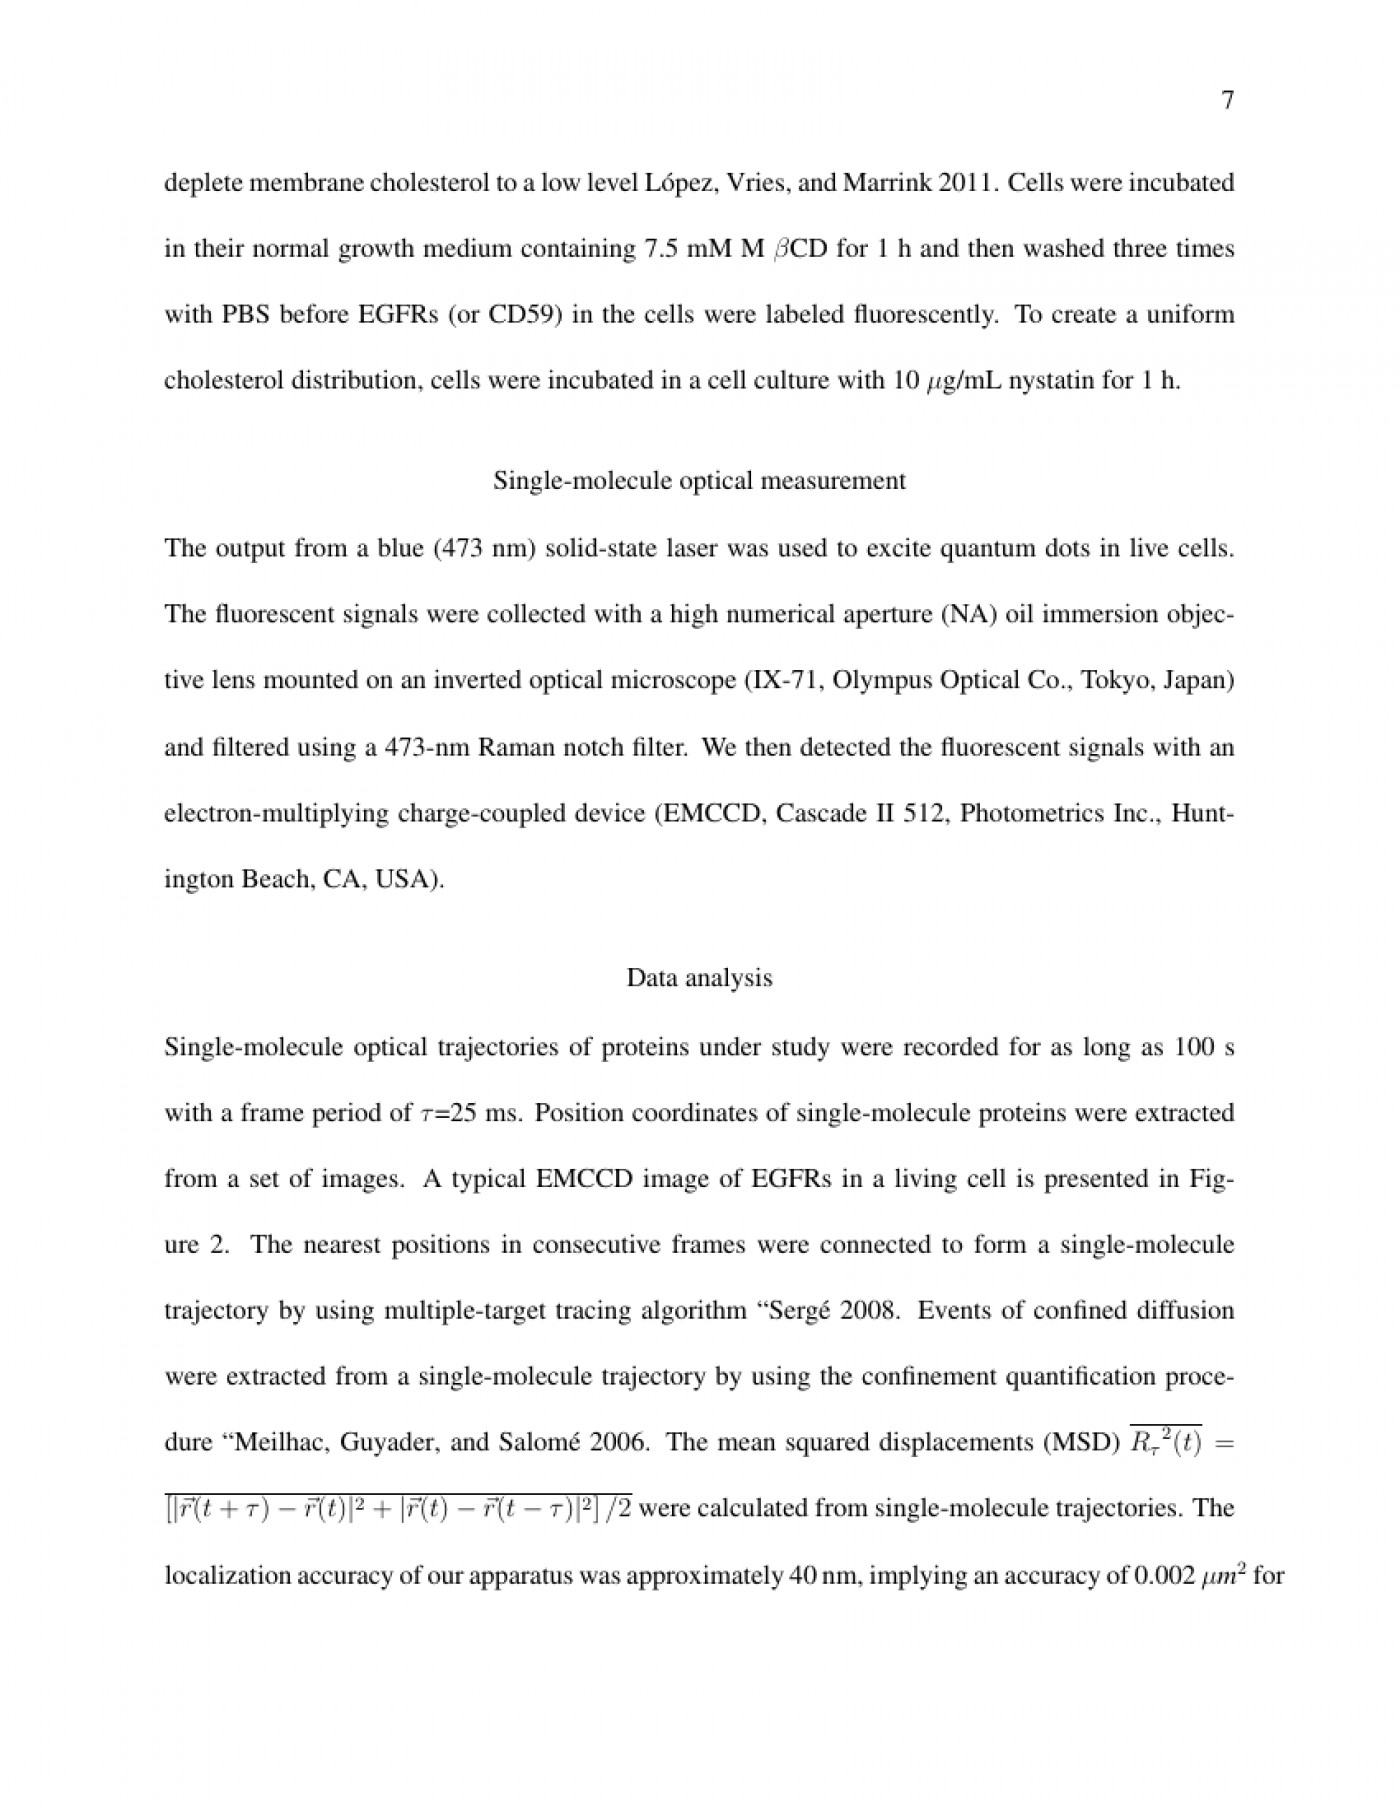 005 Article Research Paper Format Of Incredible The Ieee Example Sample Chapter 1 1400